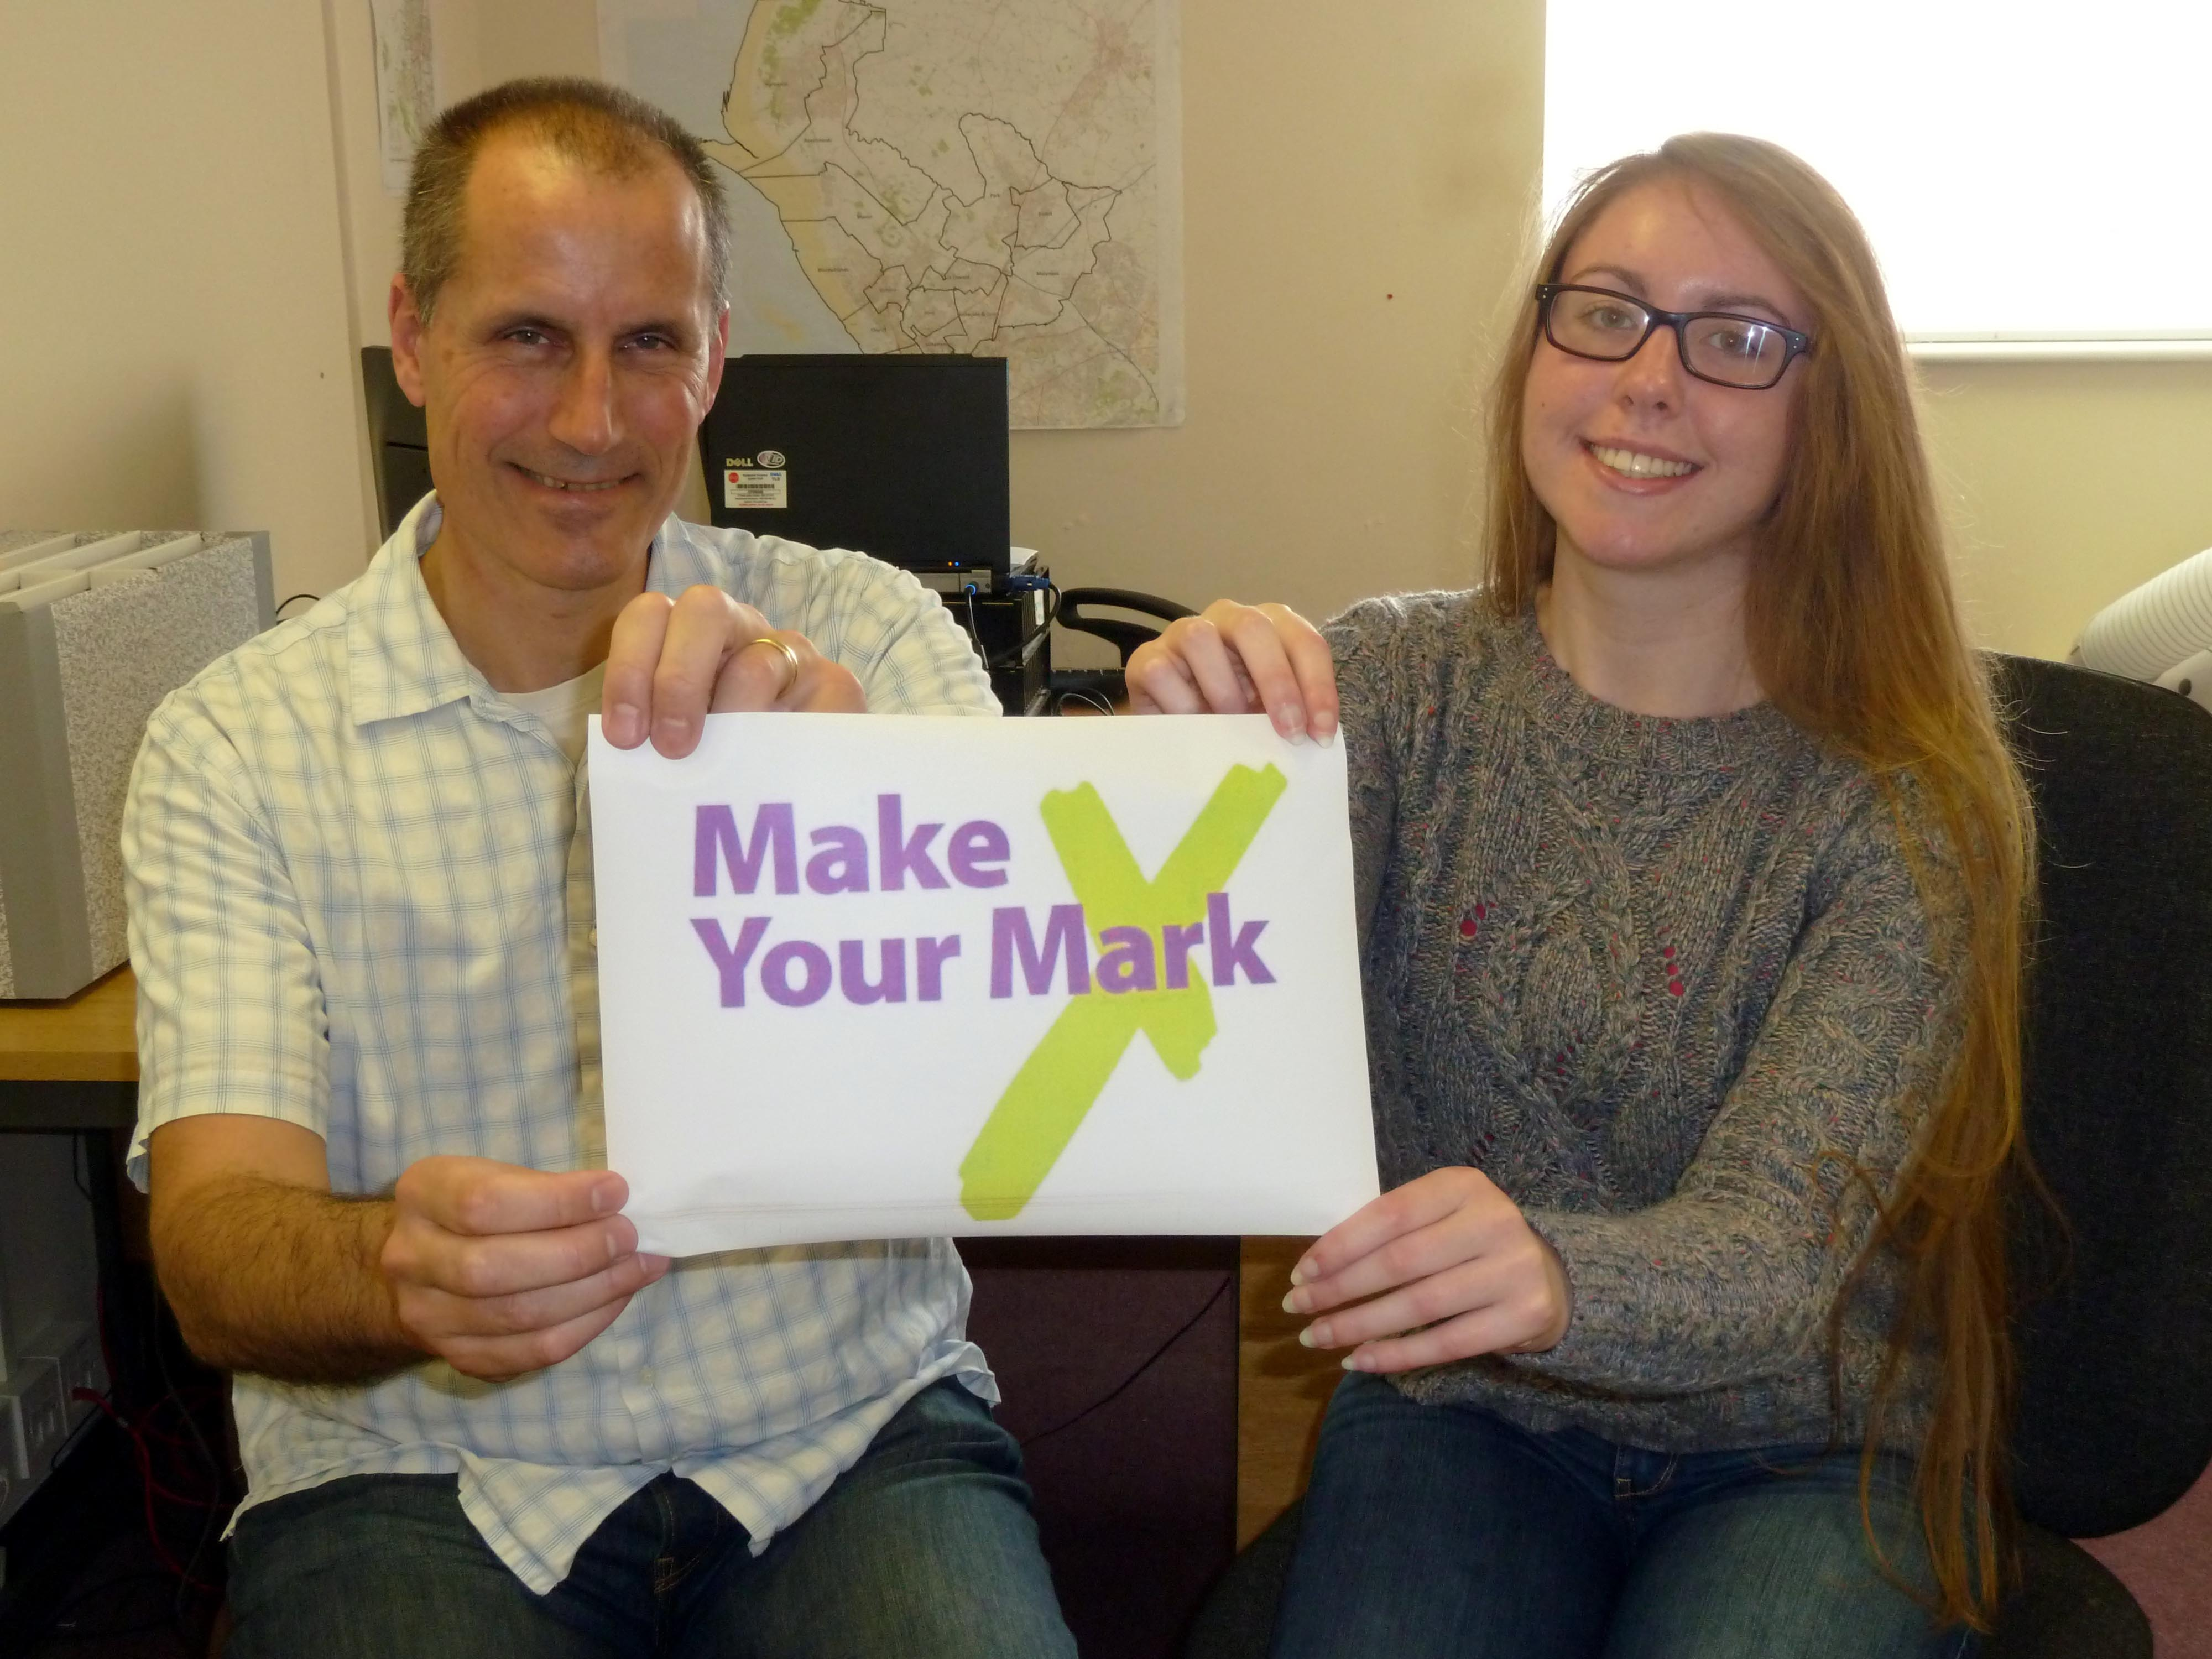 Sefton MYP Laura Curran has gained the backing of Sefton Central Labour MP Bill Esterson for the Make Your Mark campaign.